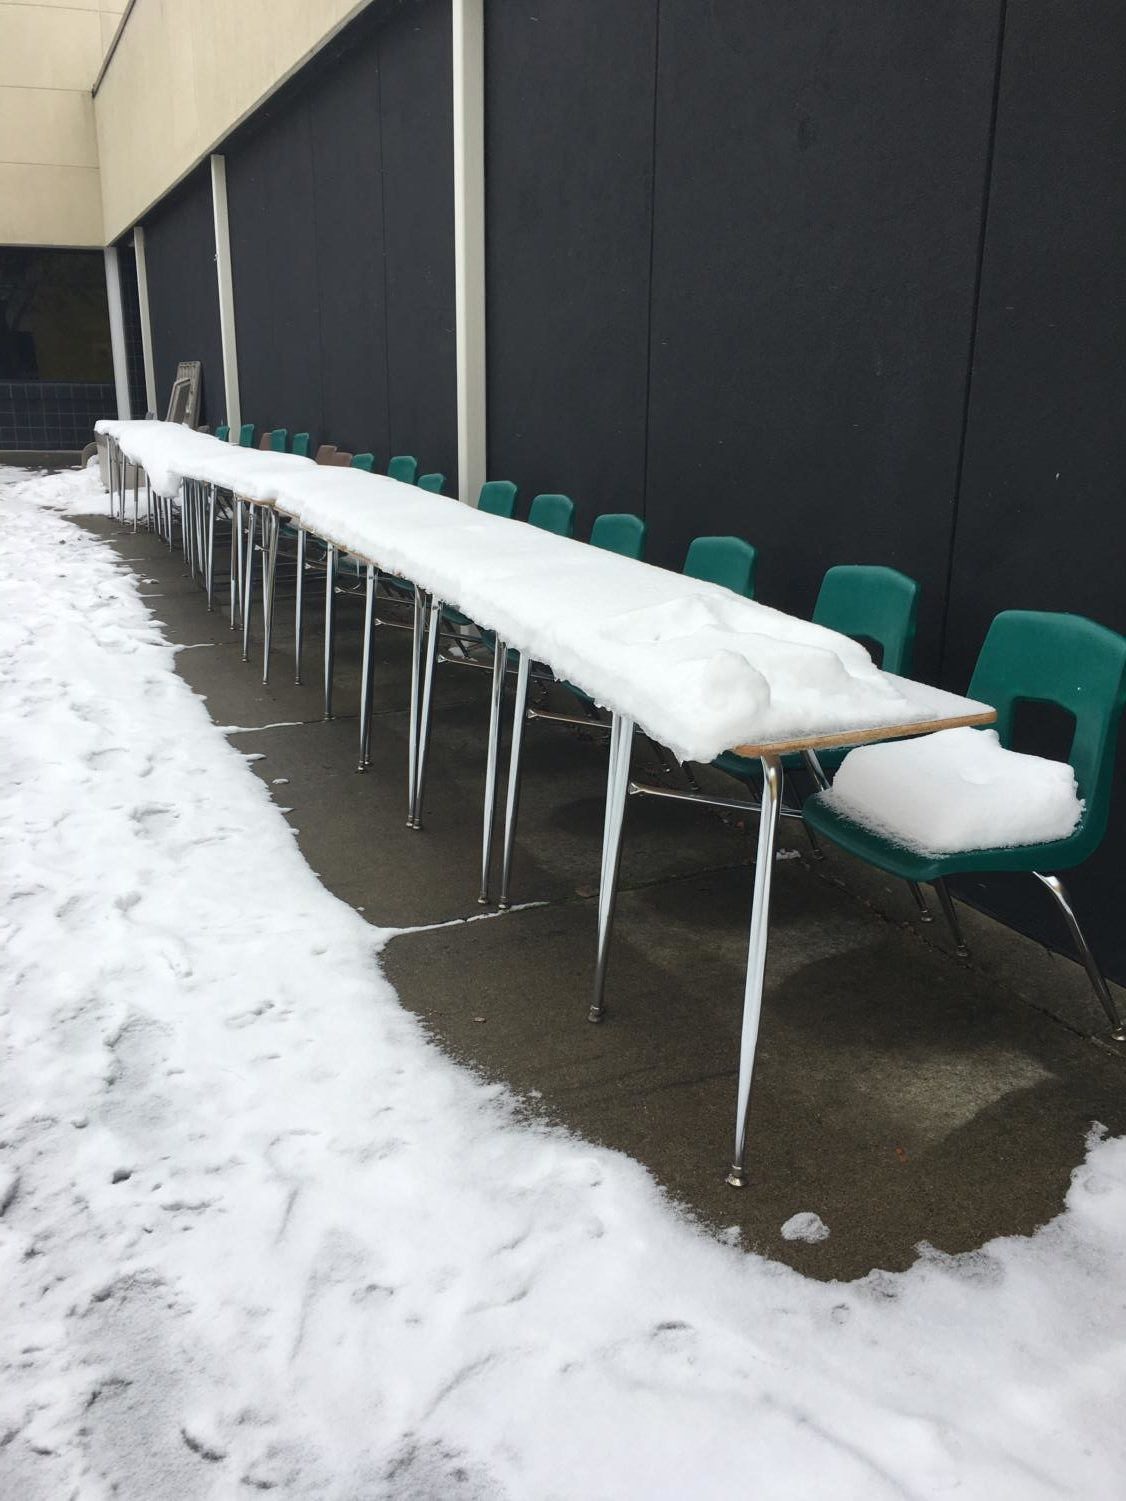 These 17 desks were lined up in the courtyard by Marissa Stone, senior, as a way to honor to the lives lost during the Parkland, FL shooting.